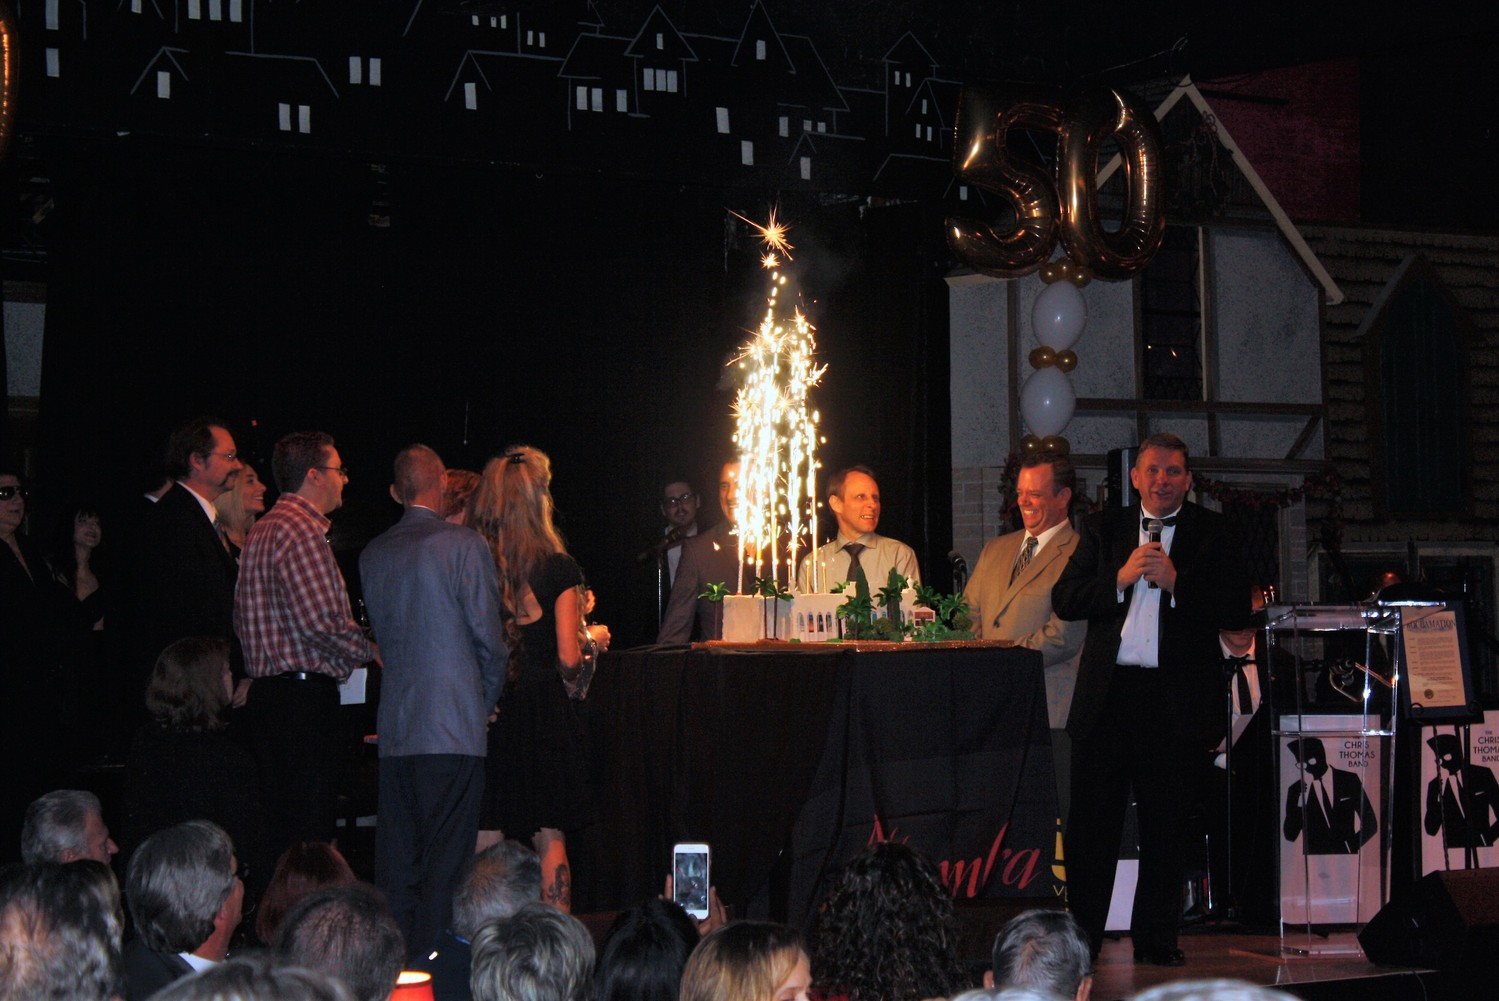 Alhambra staff gathers on stage to light the birthday cake's sparkler candles.